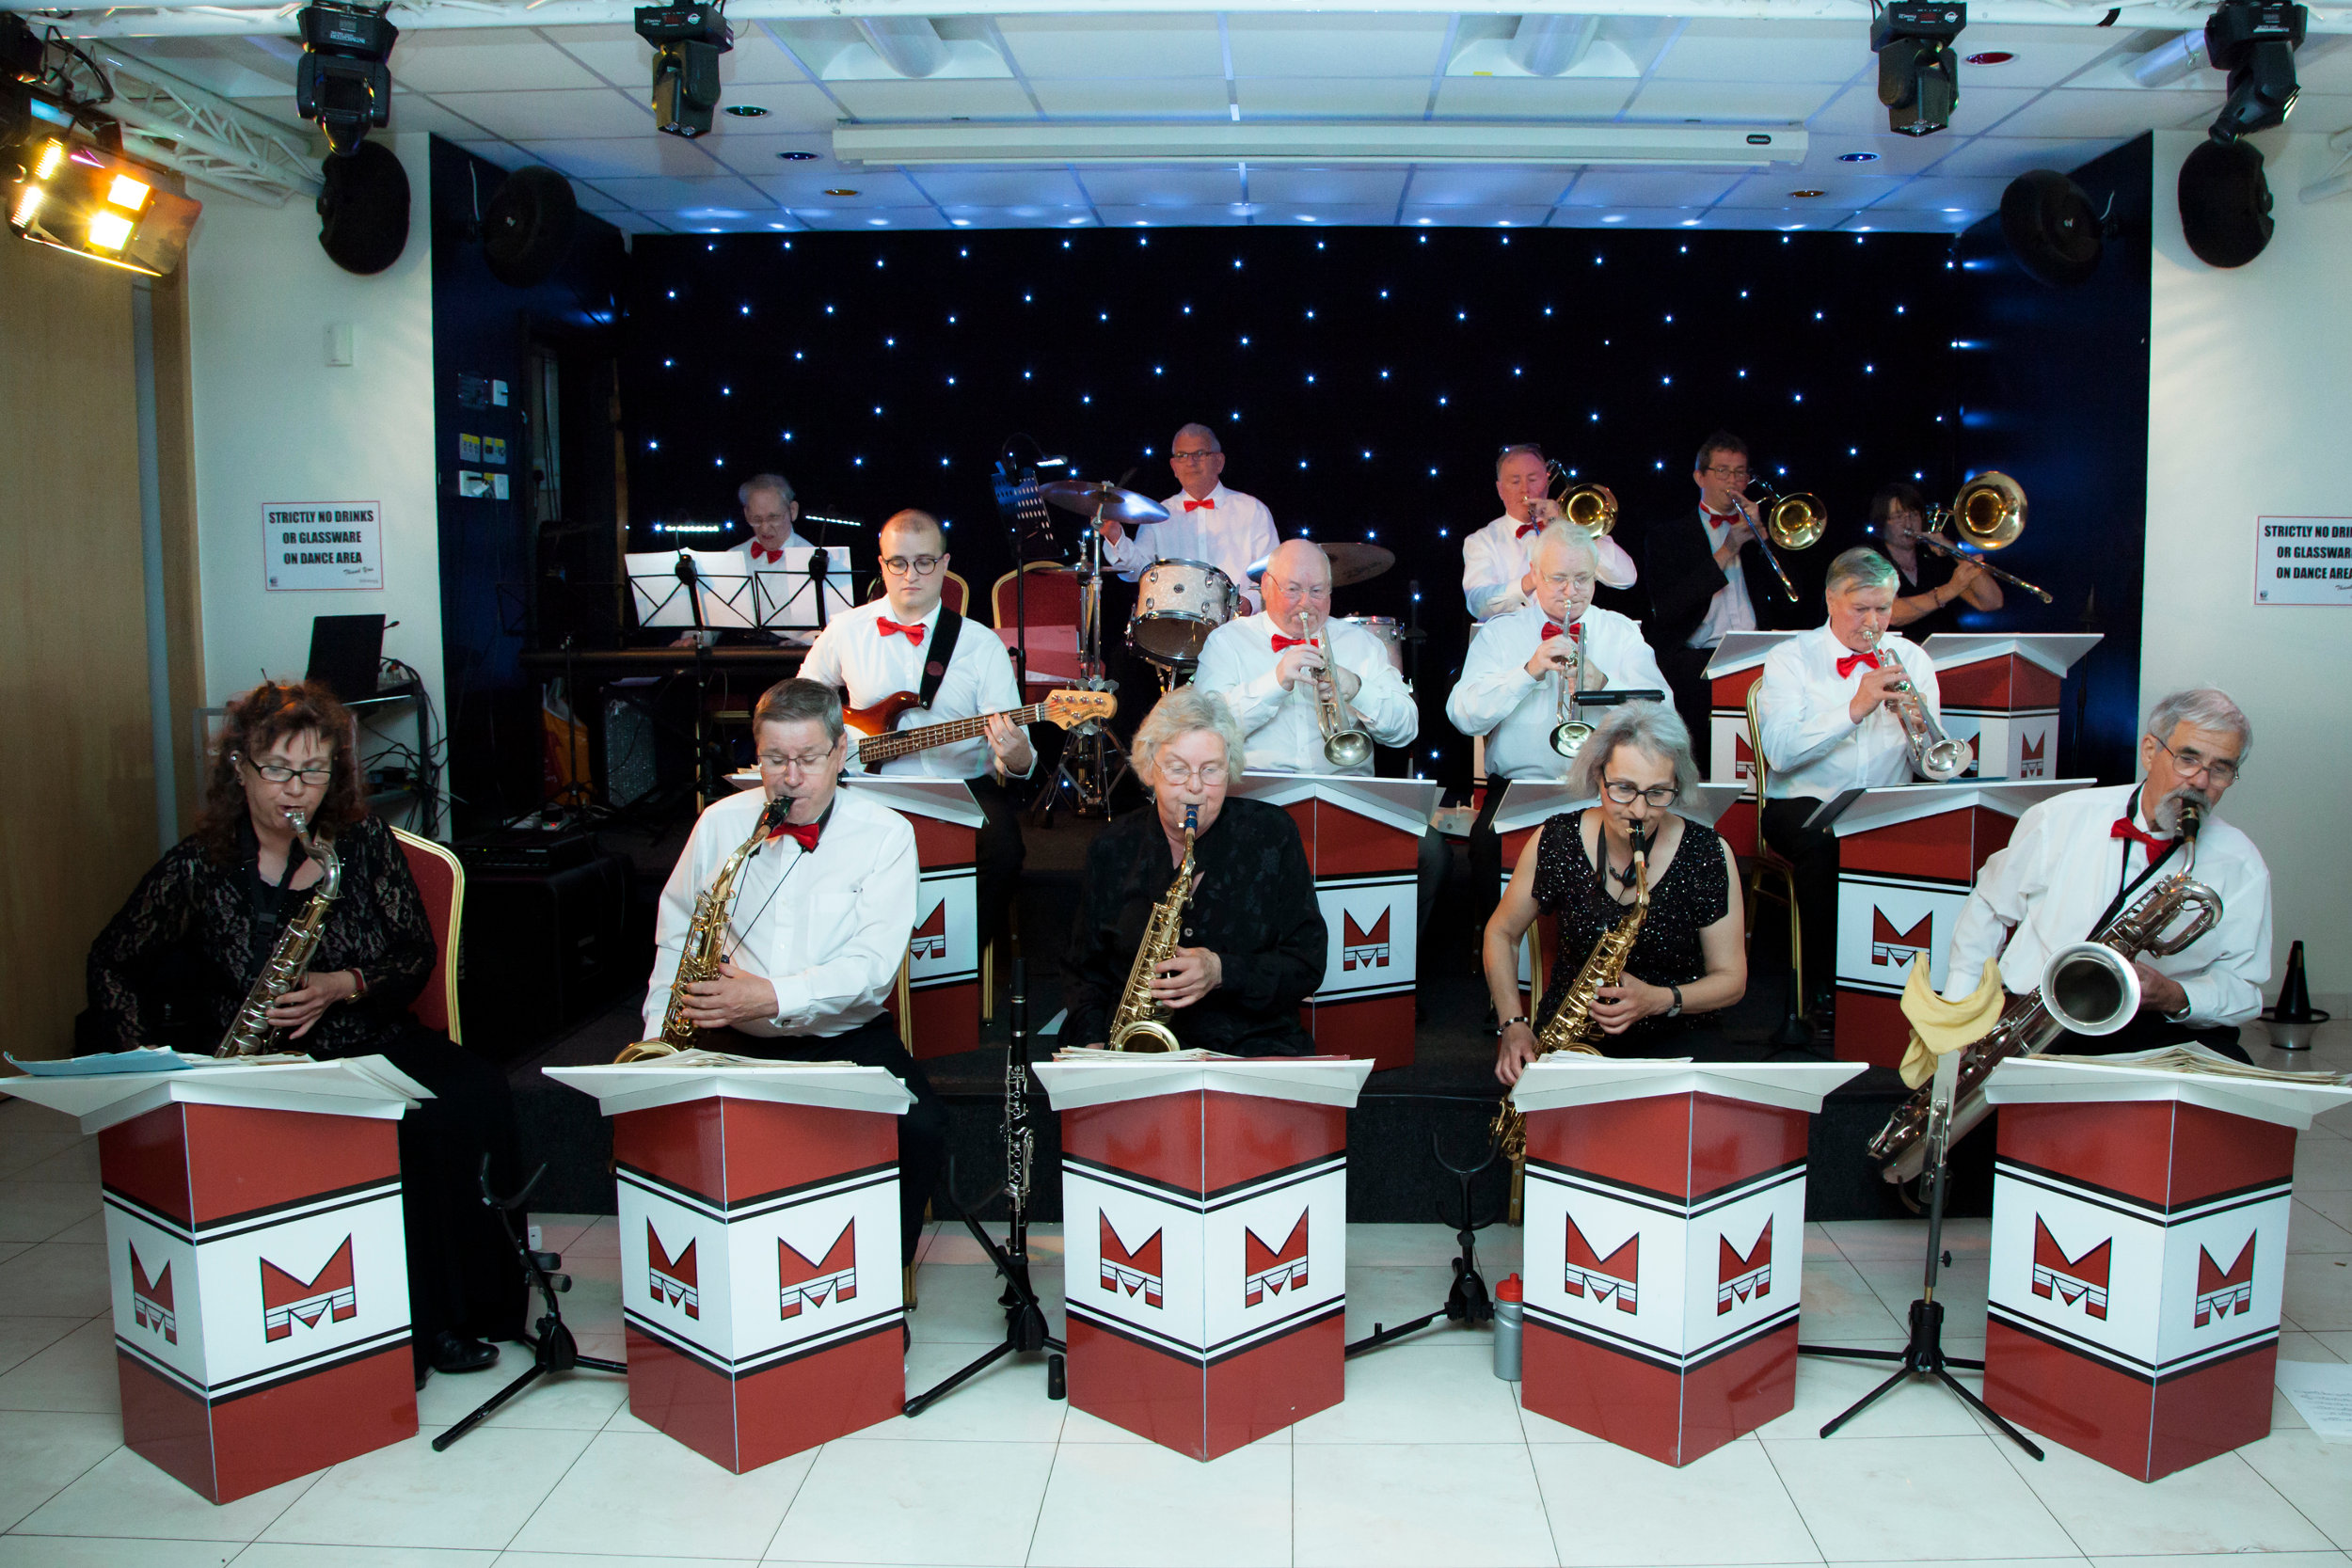 Mainline Big Band playing at Sharnbrook Hotel, Beds.